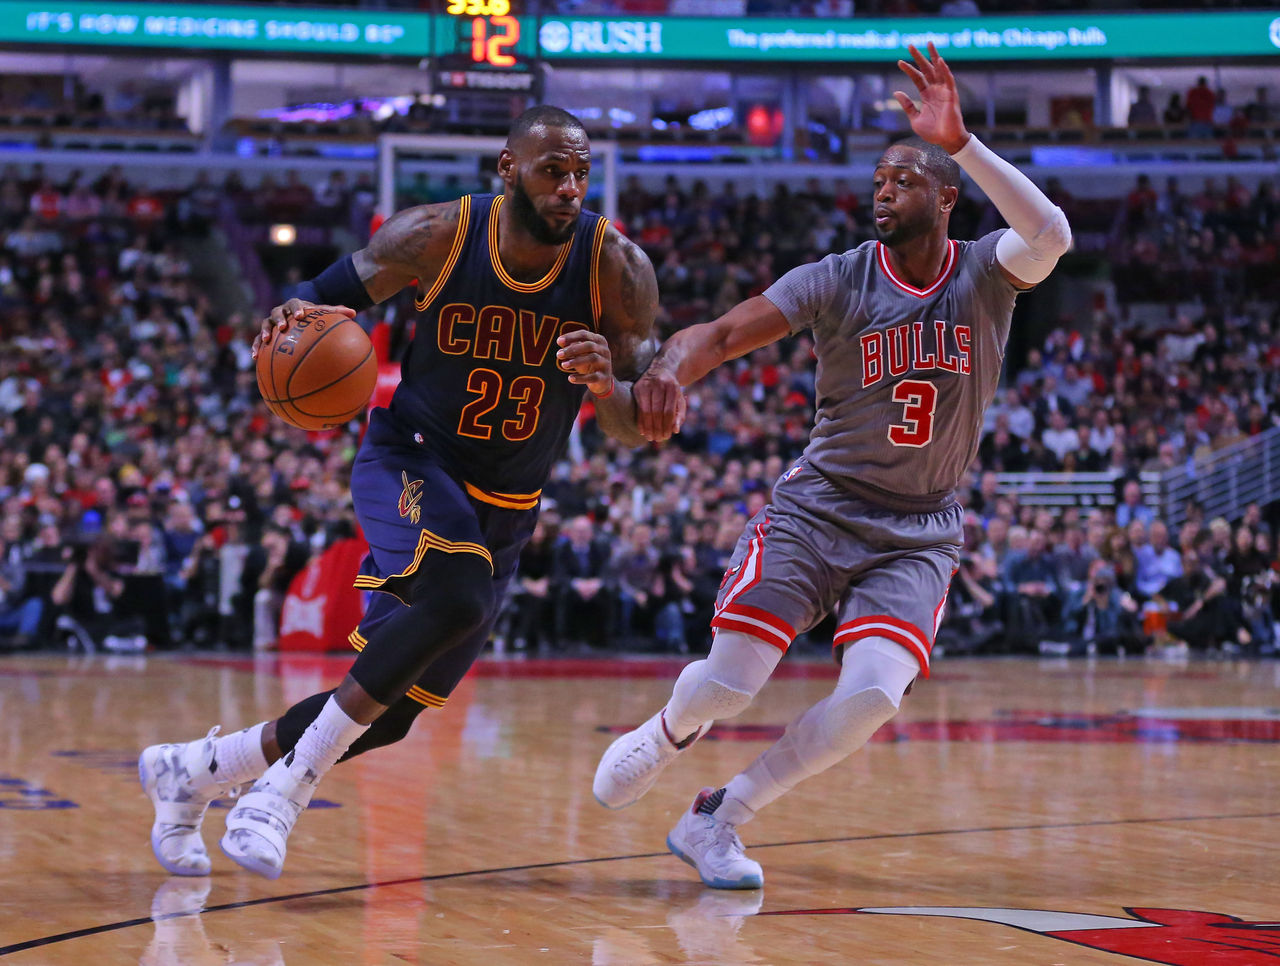 Cropped 2016 12 03t035008z 1263673439 nocid rtrmadp 3 nba cleveland cavaliers at chicago bulls